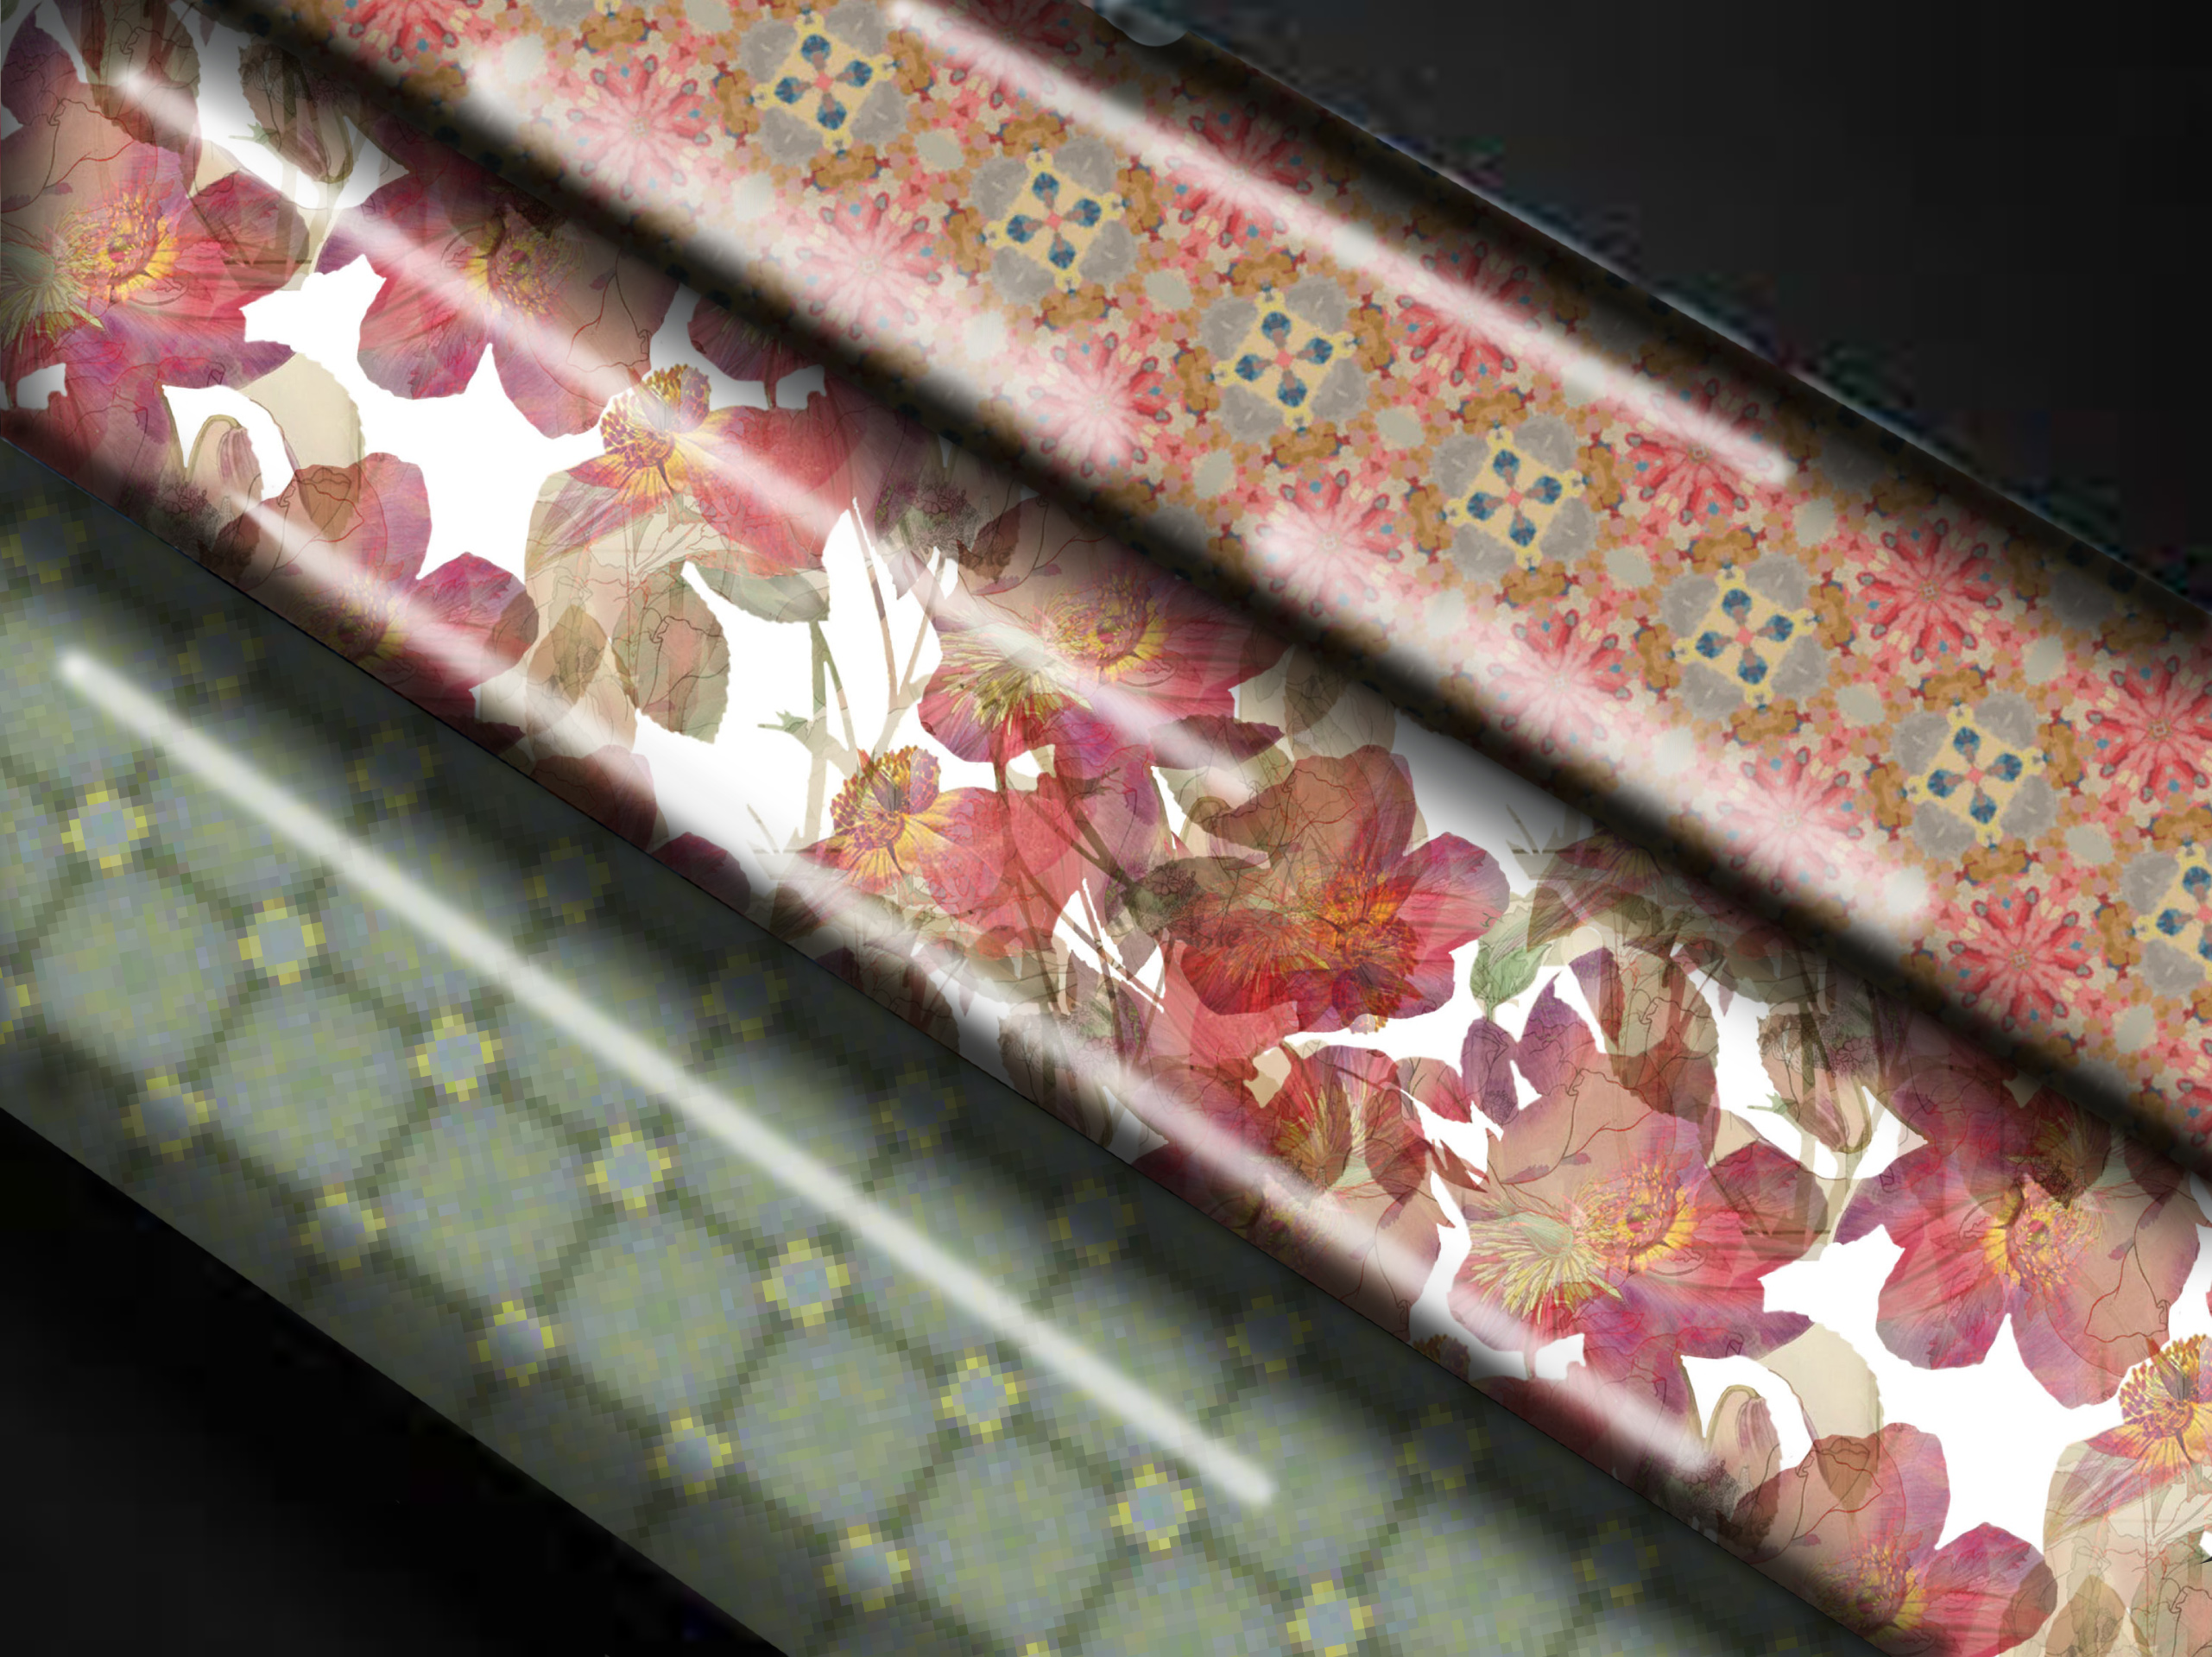 Floral overlay wrapping paper